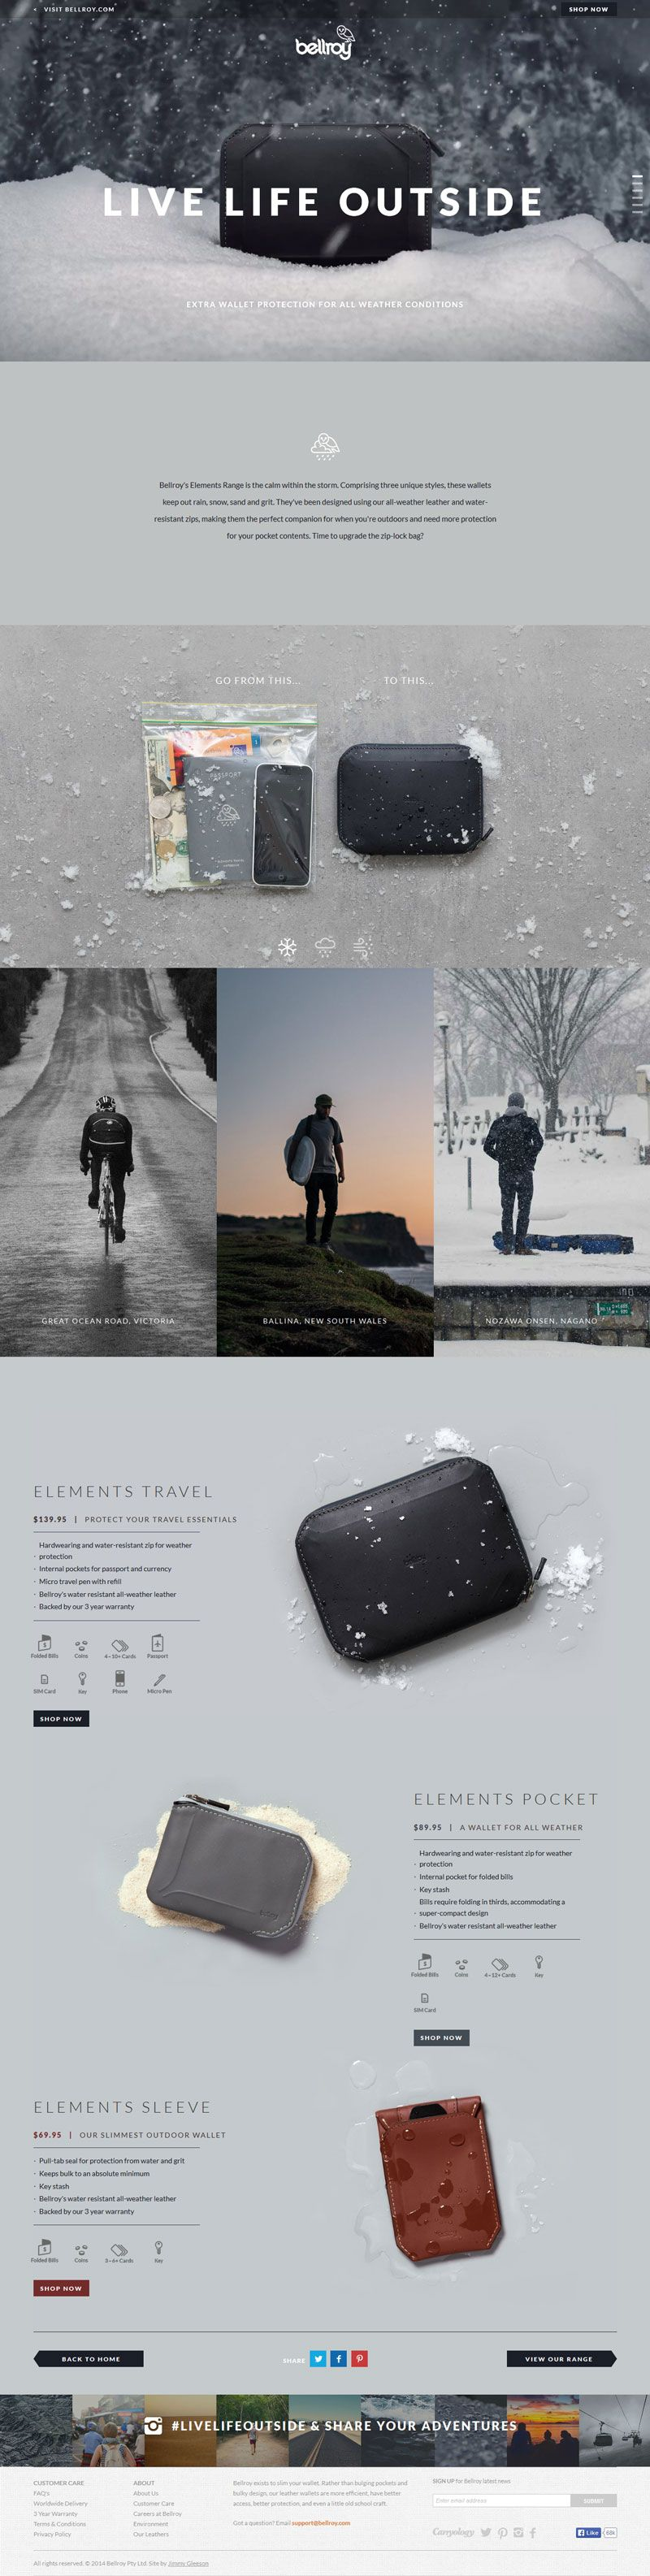 Stunning lifestyle images really carry this minimalist but informative website design. #website #webdesign #creativity